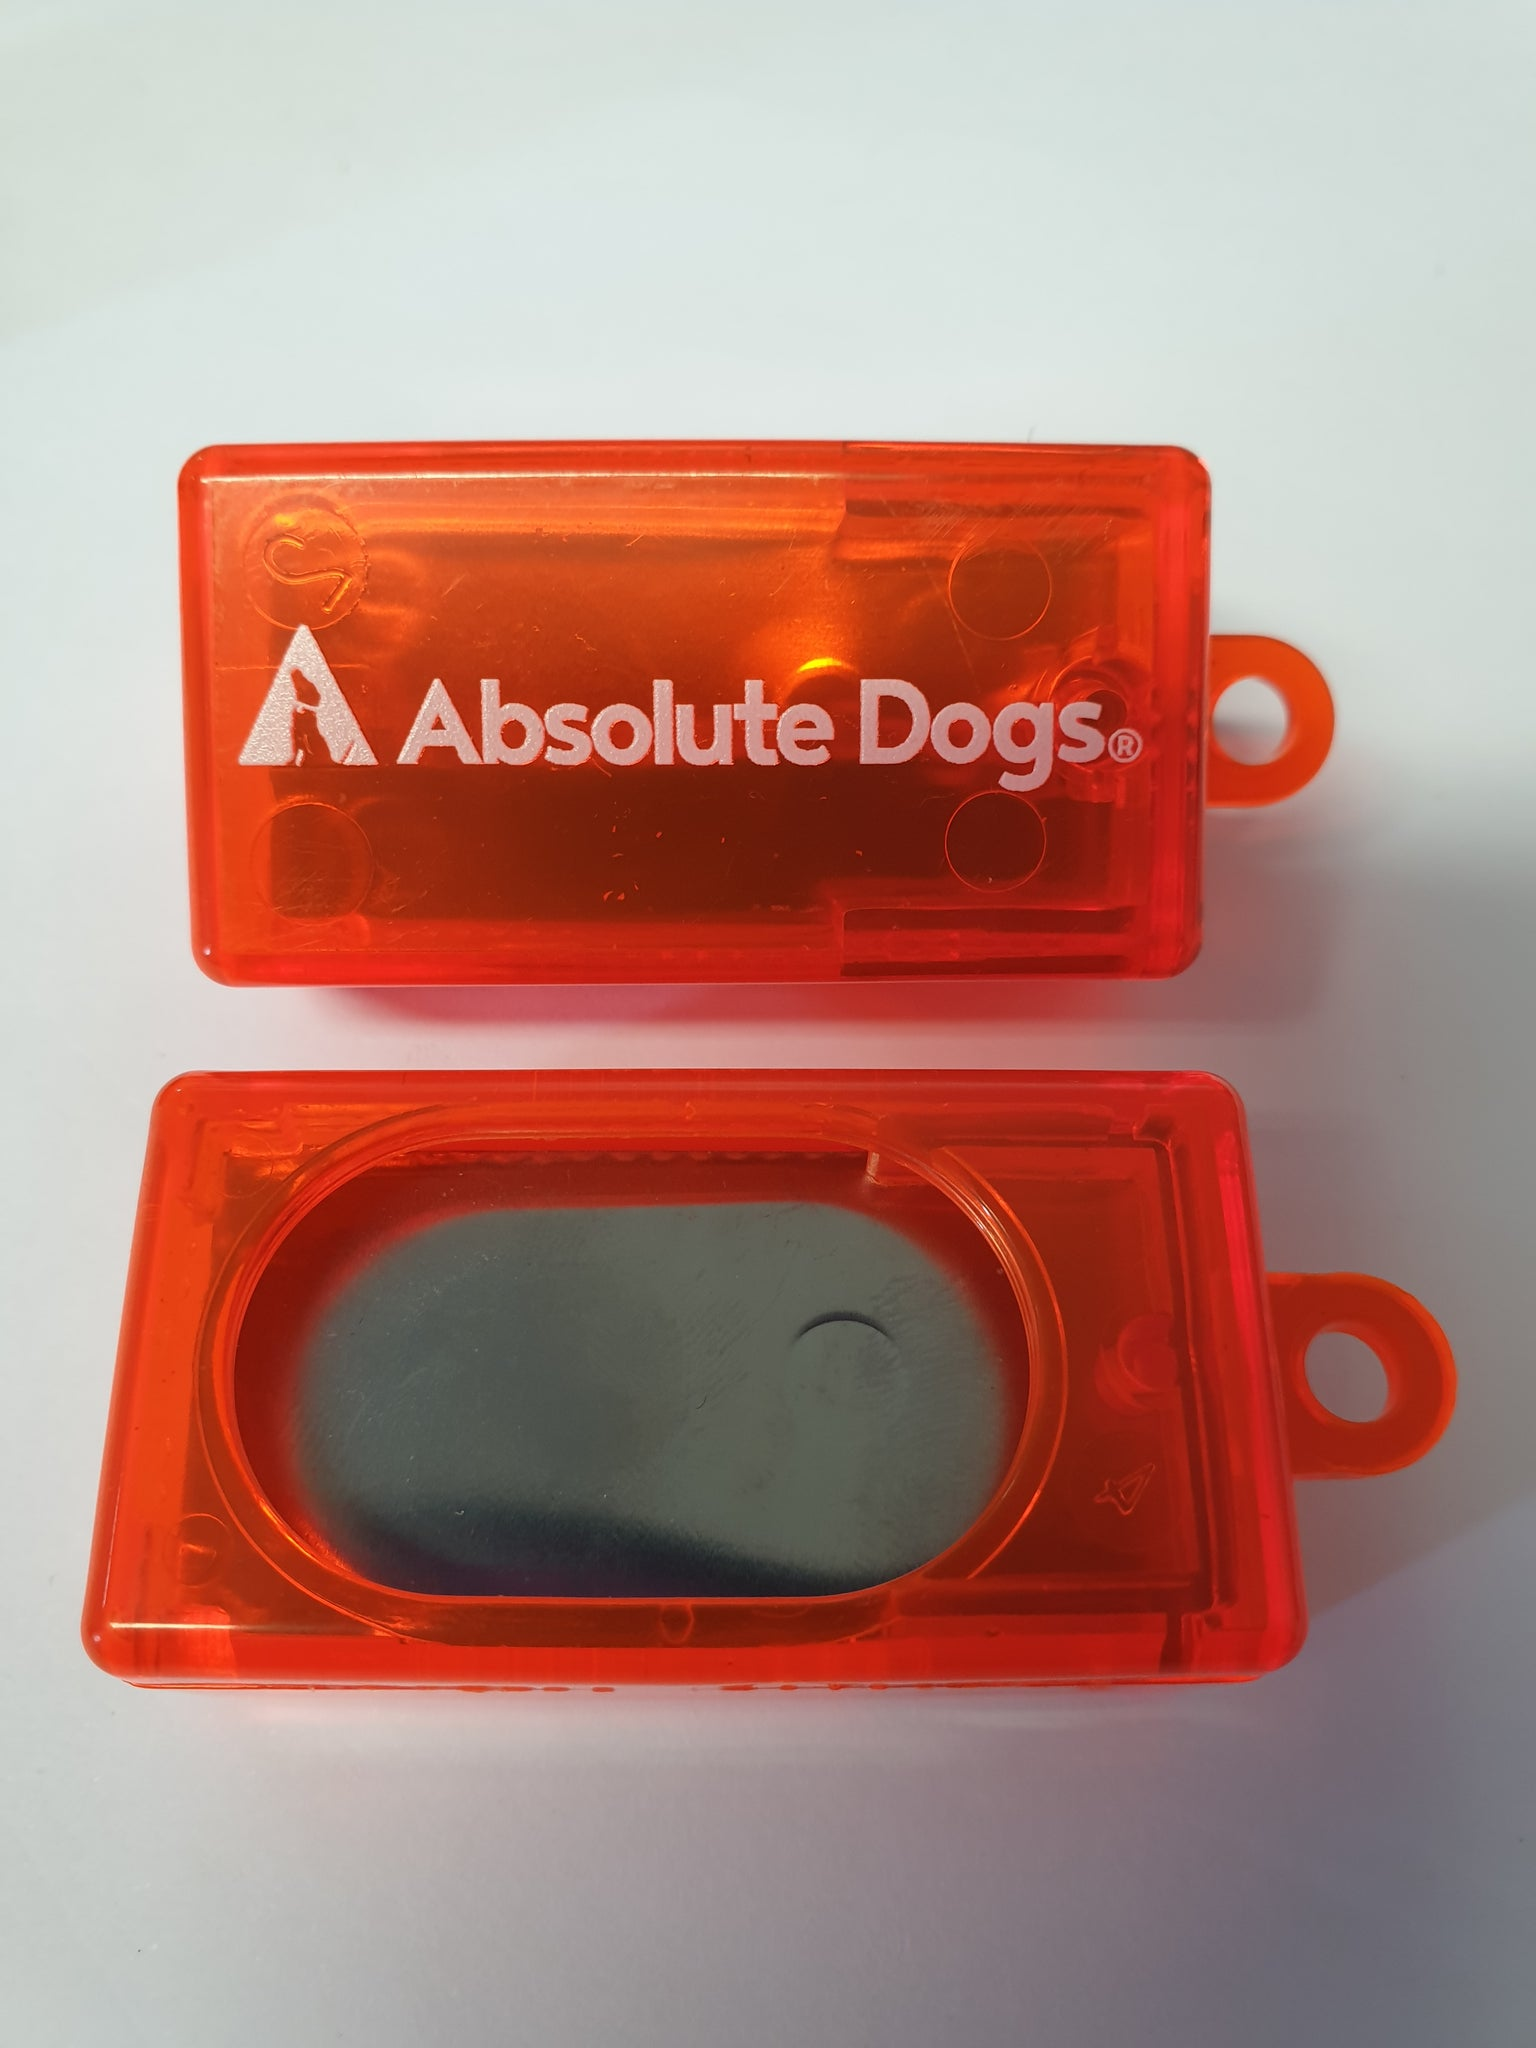 Absolute Dogs Clickers